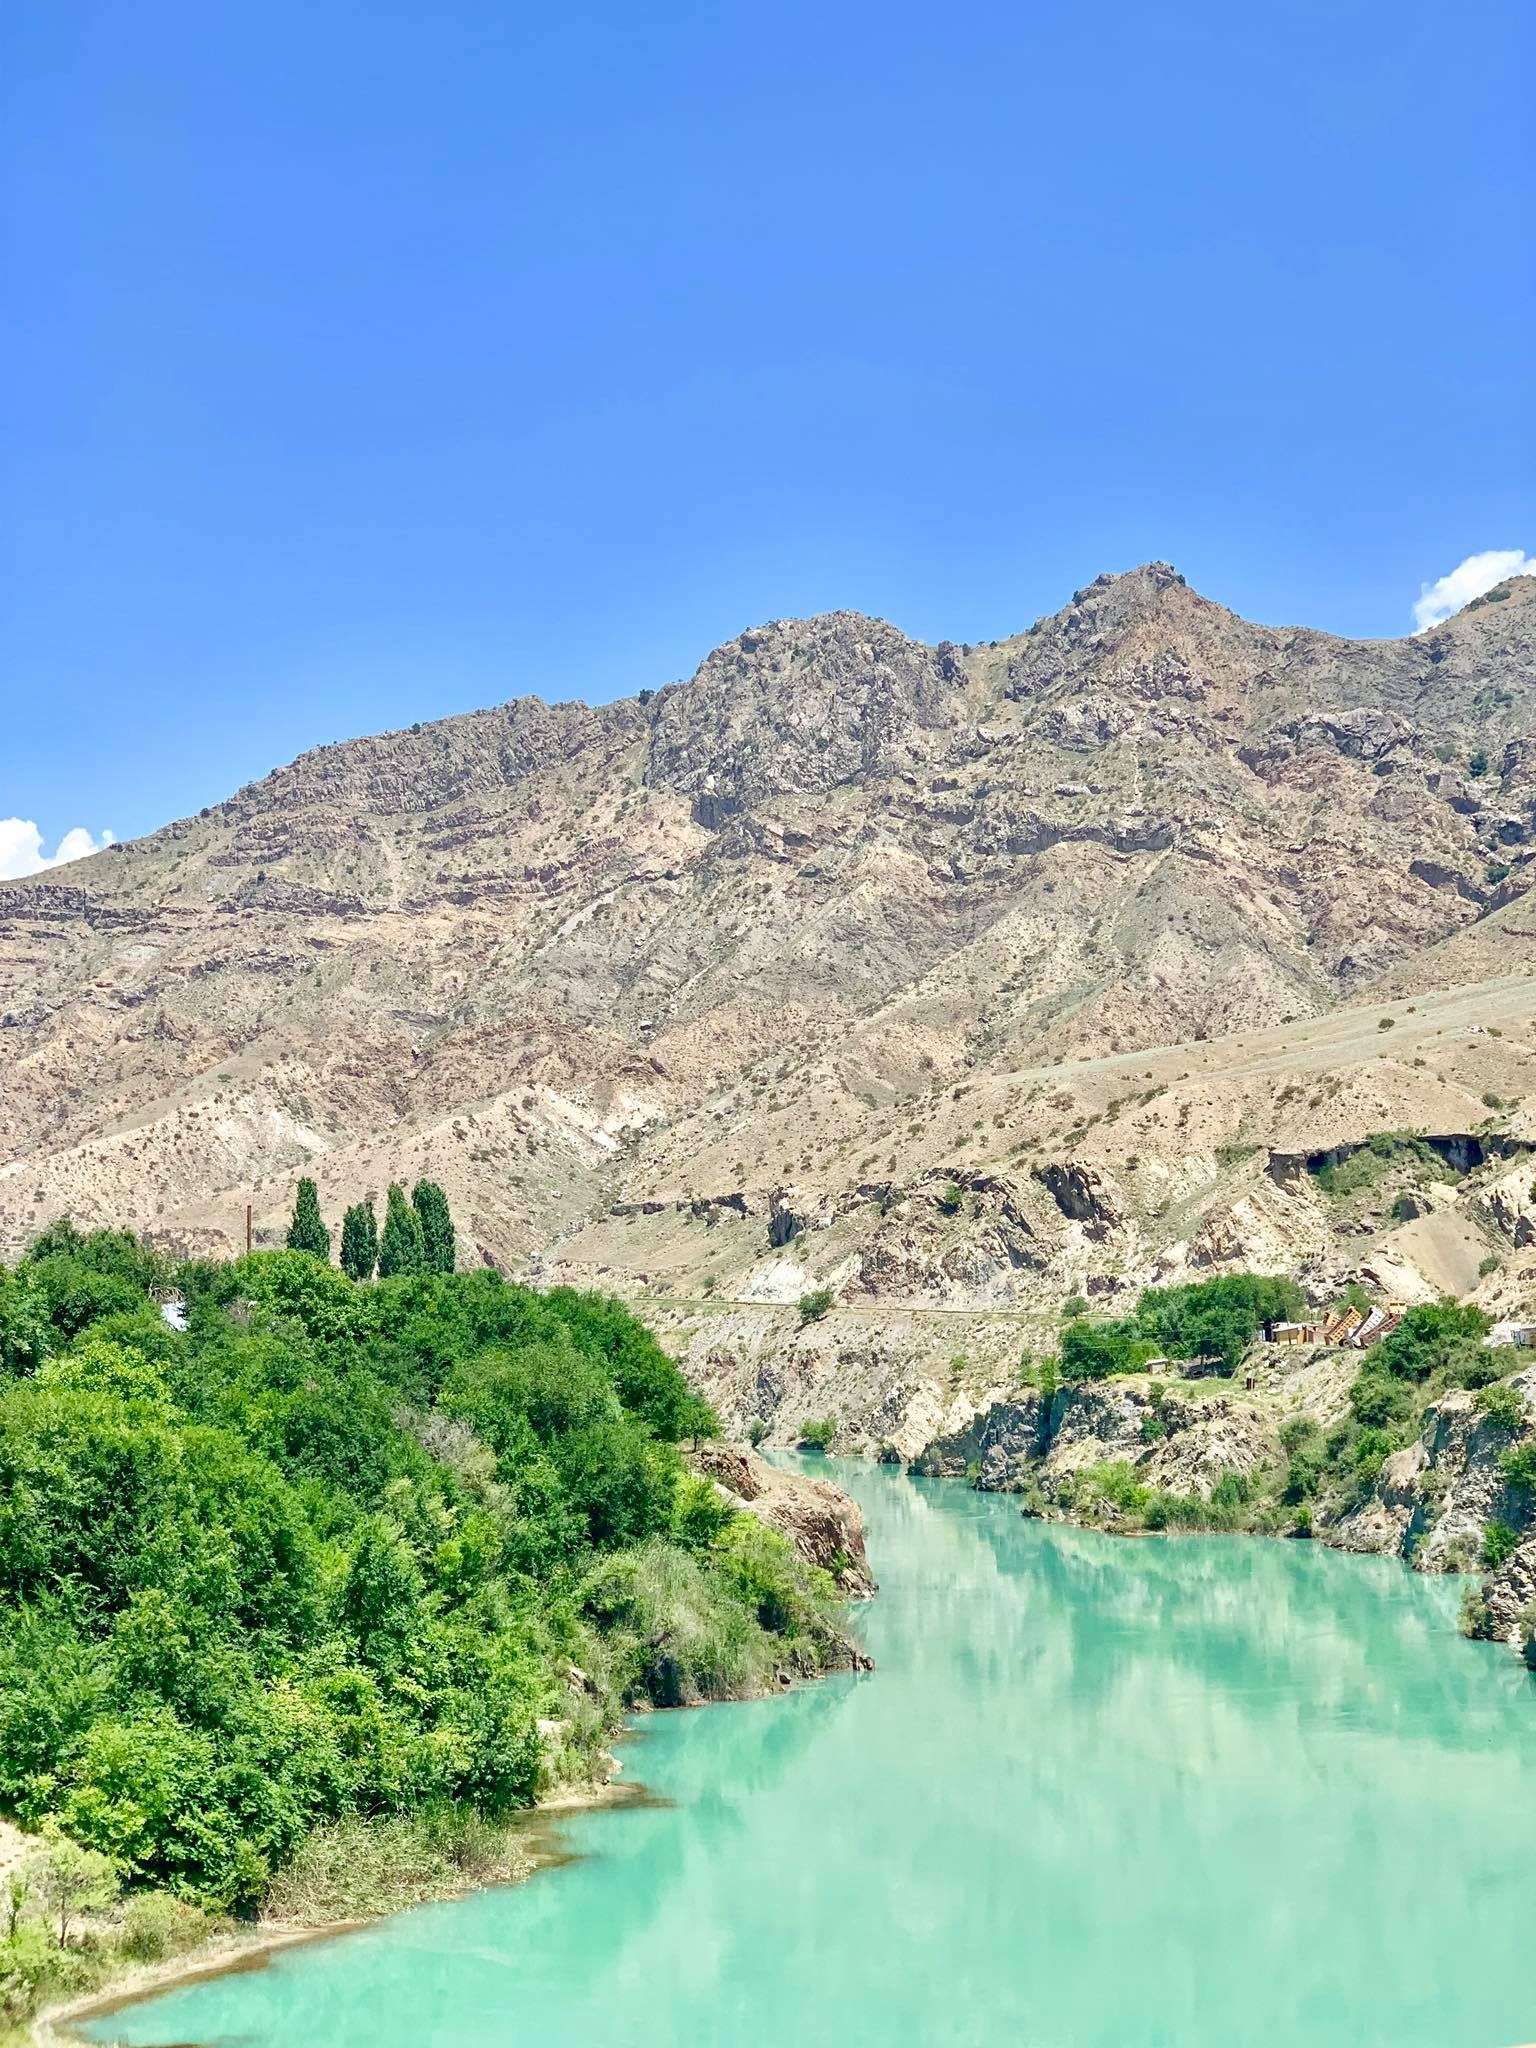 Kach Solo Travels in 2019 Roadtrip to Sary Chelek Lake which is 330 km. from Osh, Kyrgyzstan11.jpg